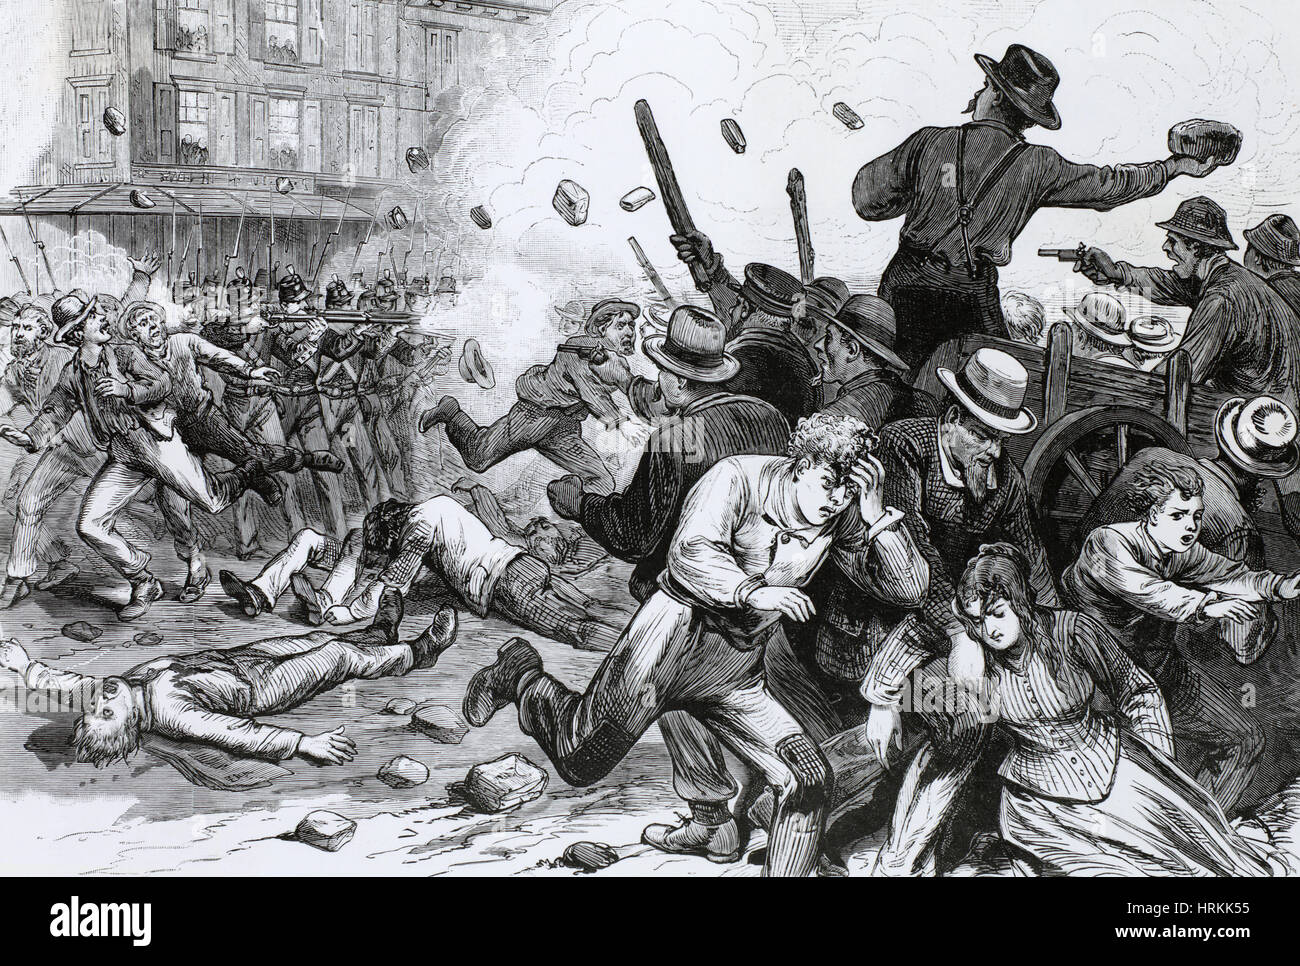 who was involved in the great railroad strike of 1877